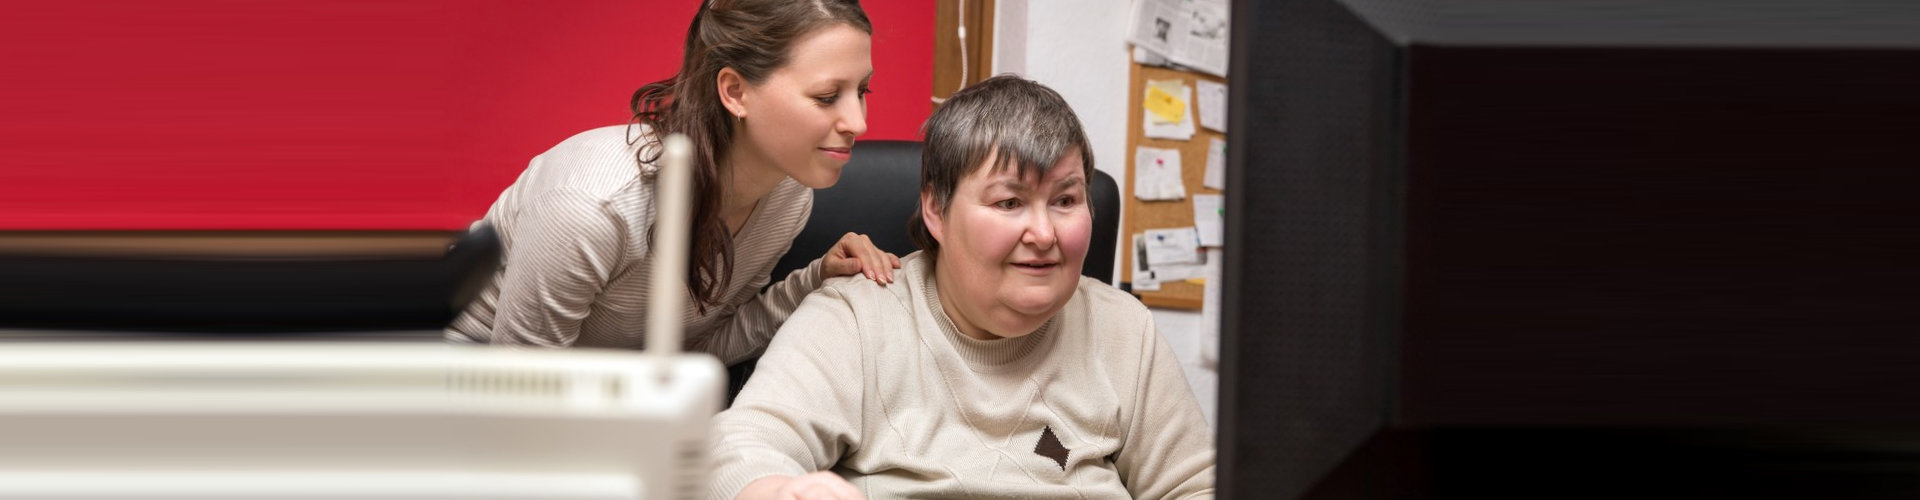 caregiver supporting a woman with her work